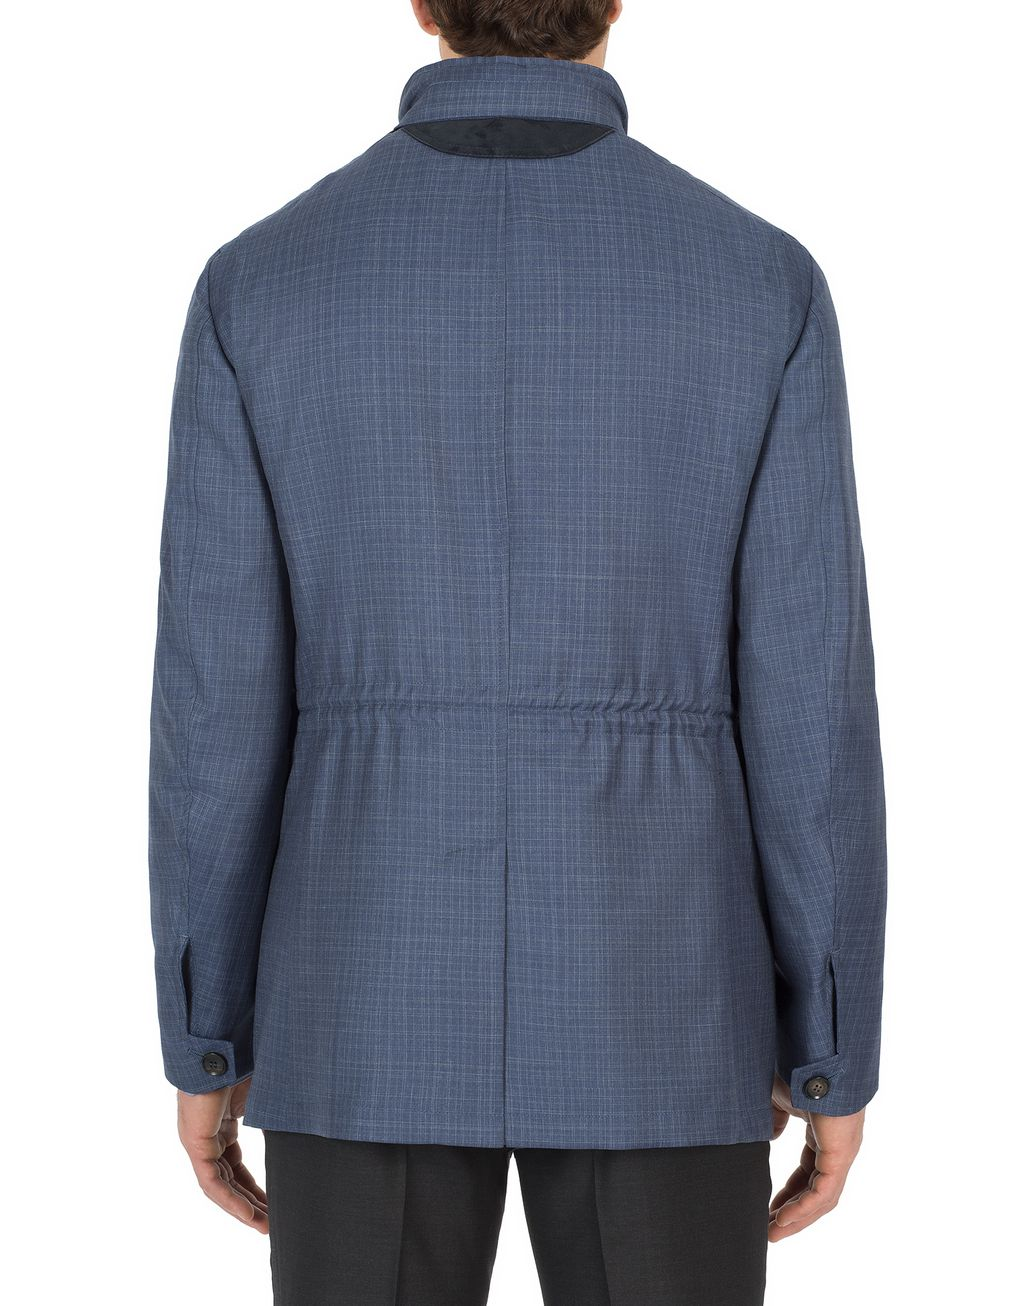 BRIONI Navy Blue Check Trans Seasonal Field Jacket Outerwear Man d